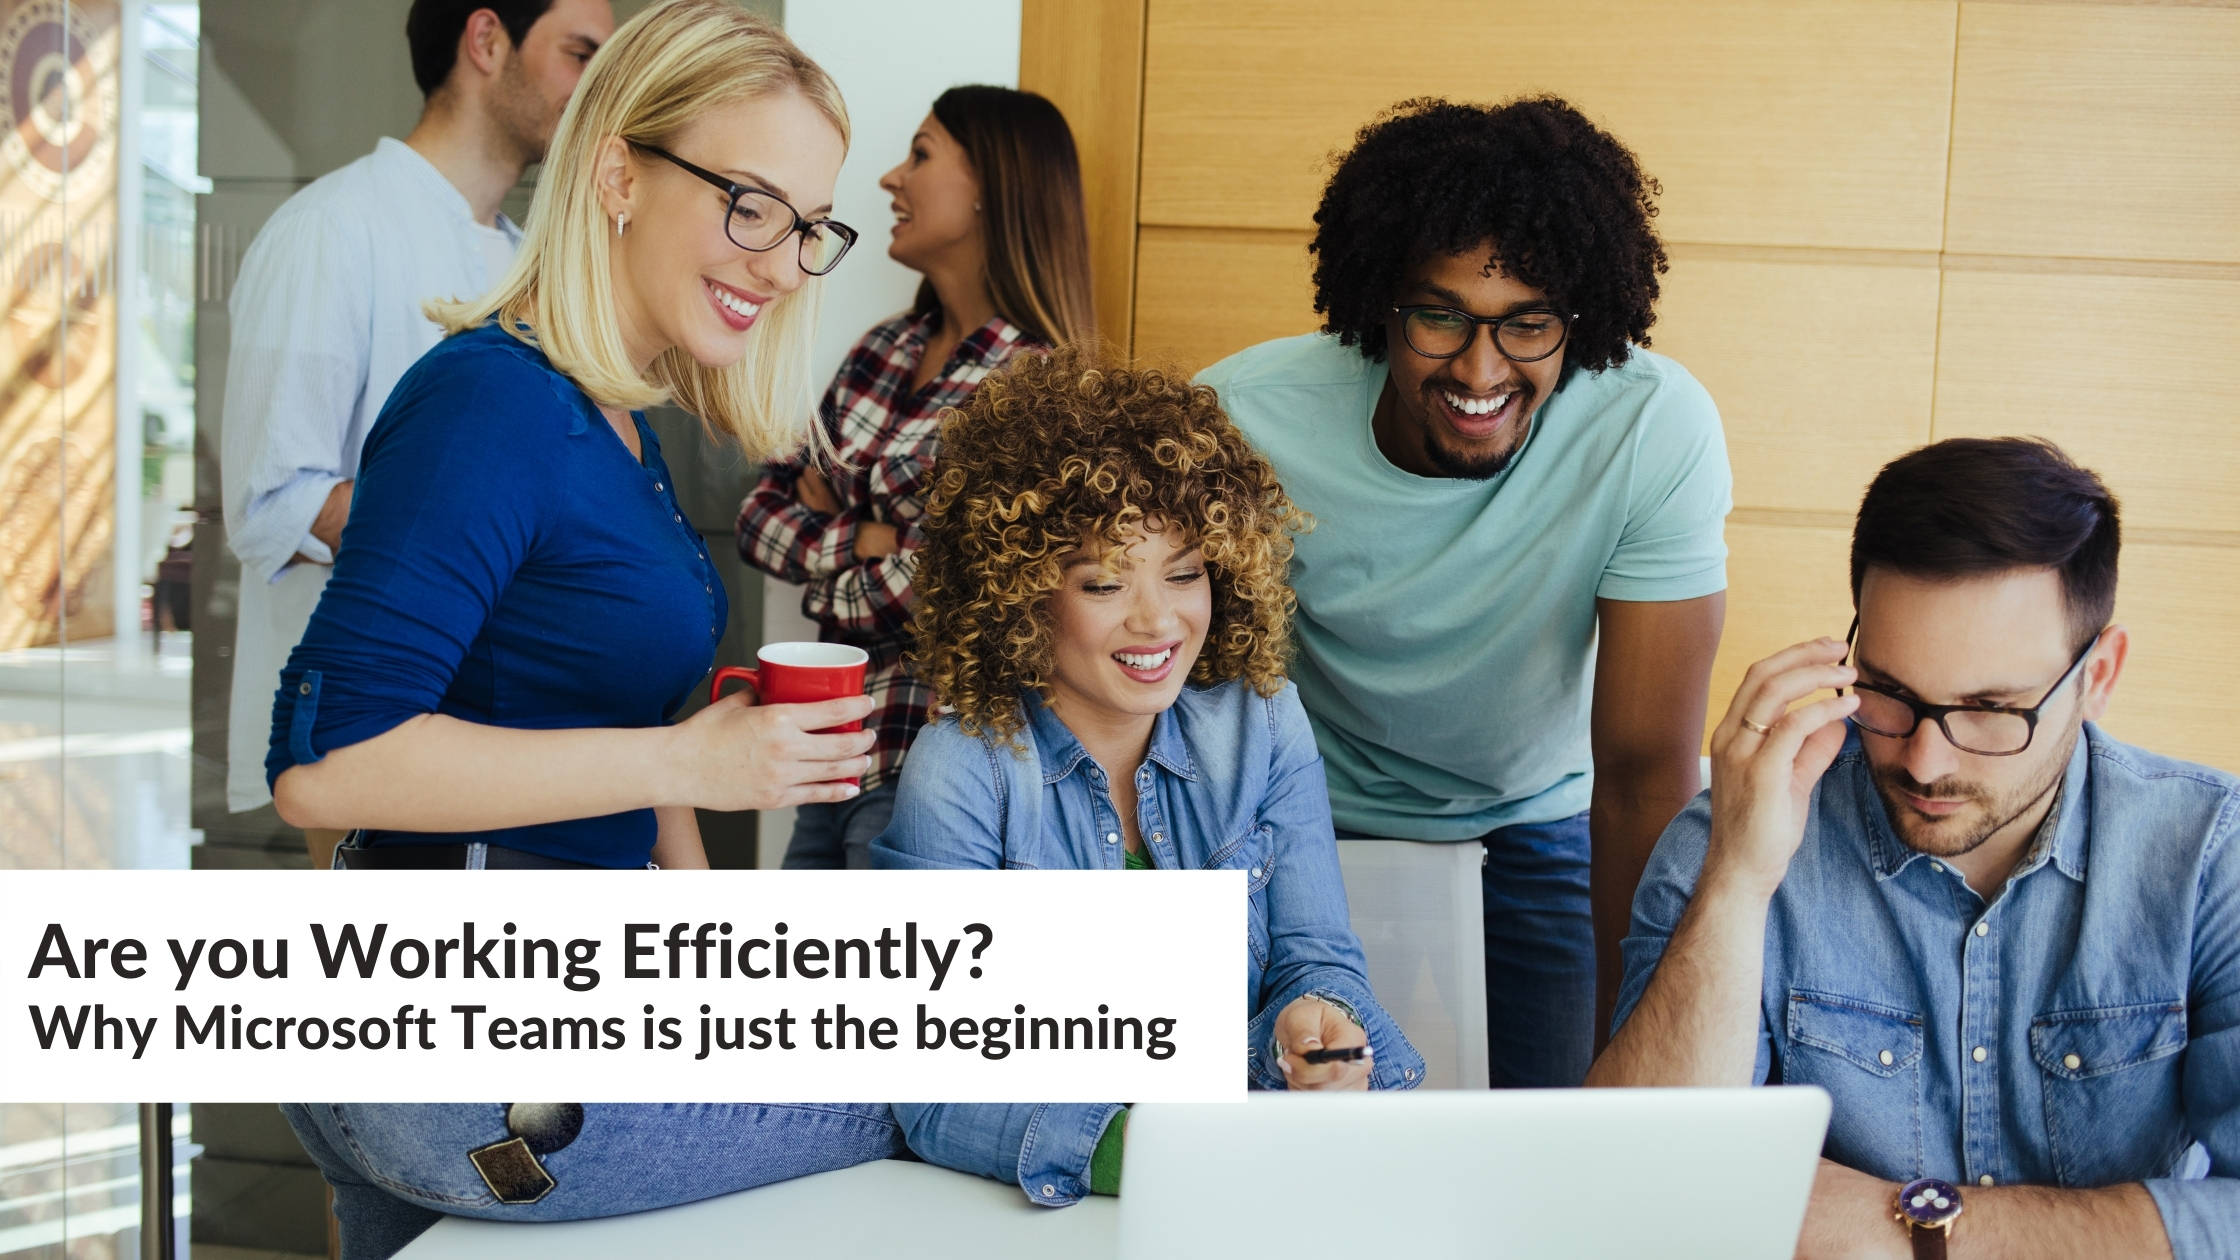 Are you Working Efficiently?